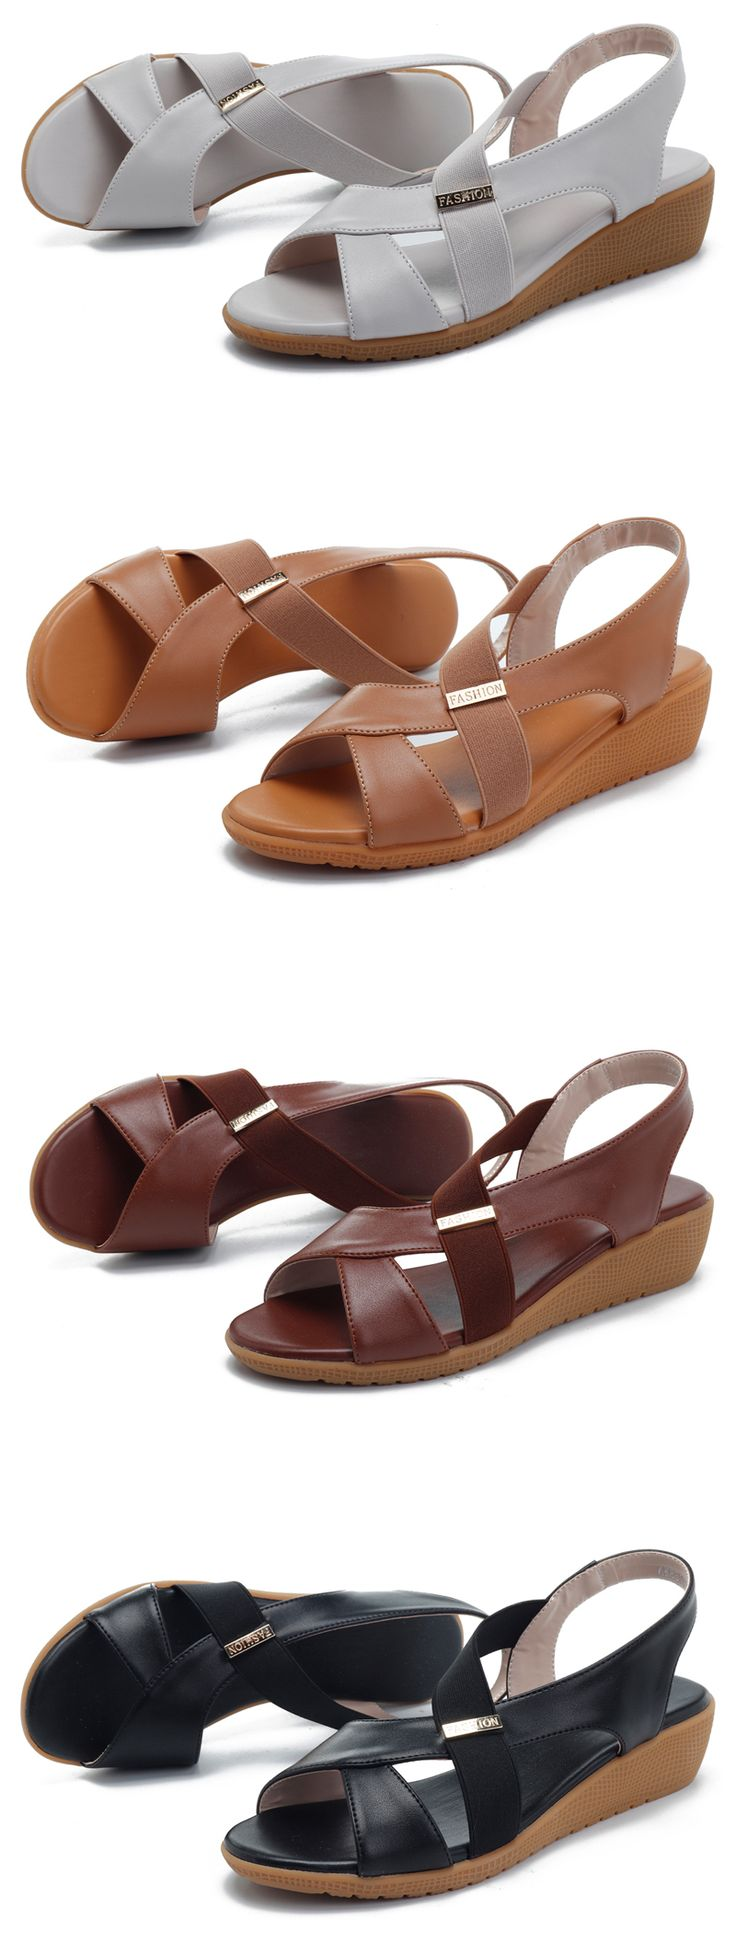 331 Best Zapatos Images On Pinterest Flats Ladies Shoes And Yongki Komaladi Gabriel Ballerina Yellow Us4507 Large Size Leather Wedges Wearable Casual Sandals